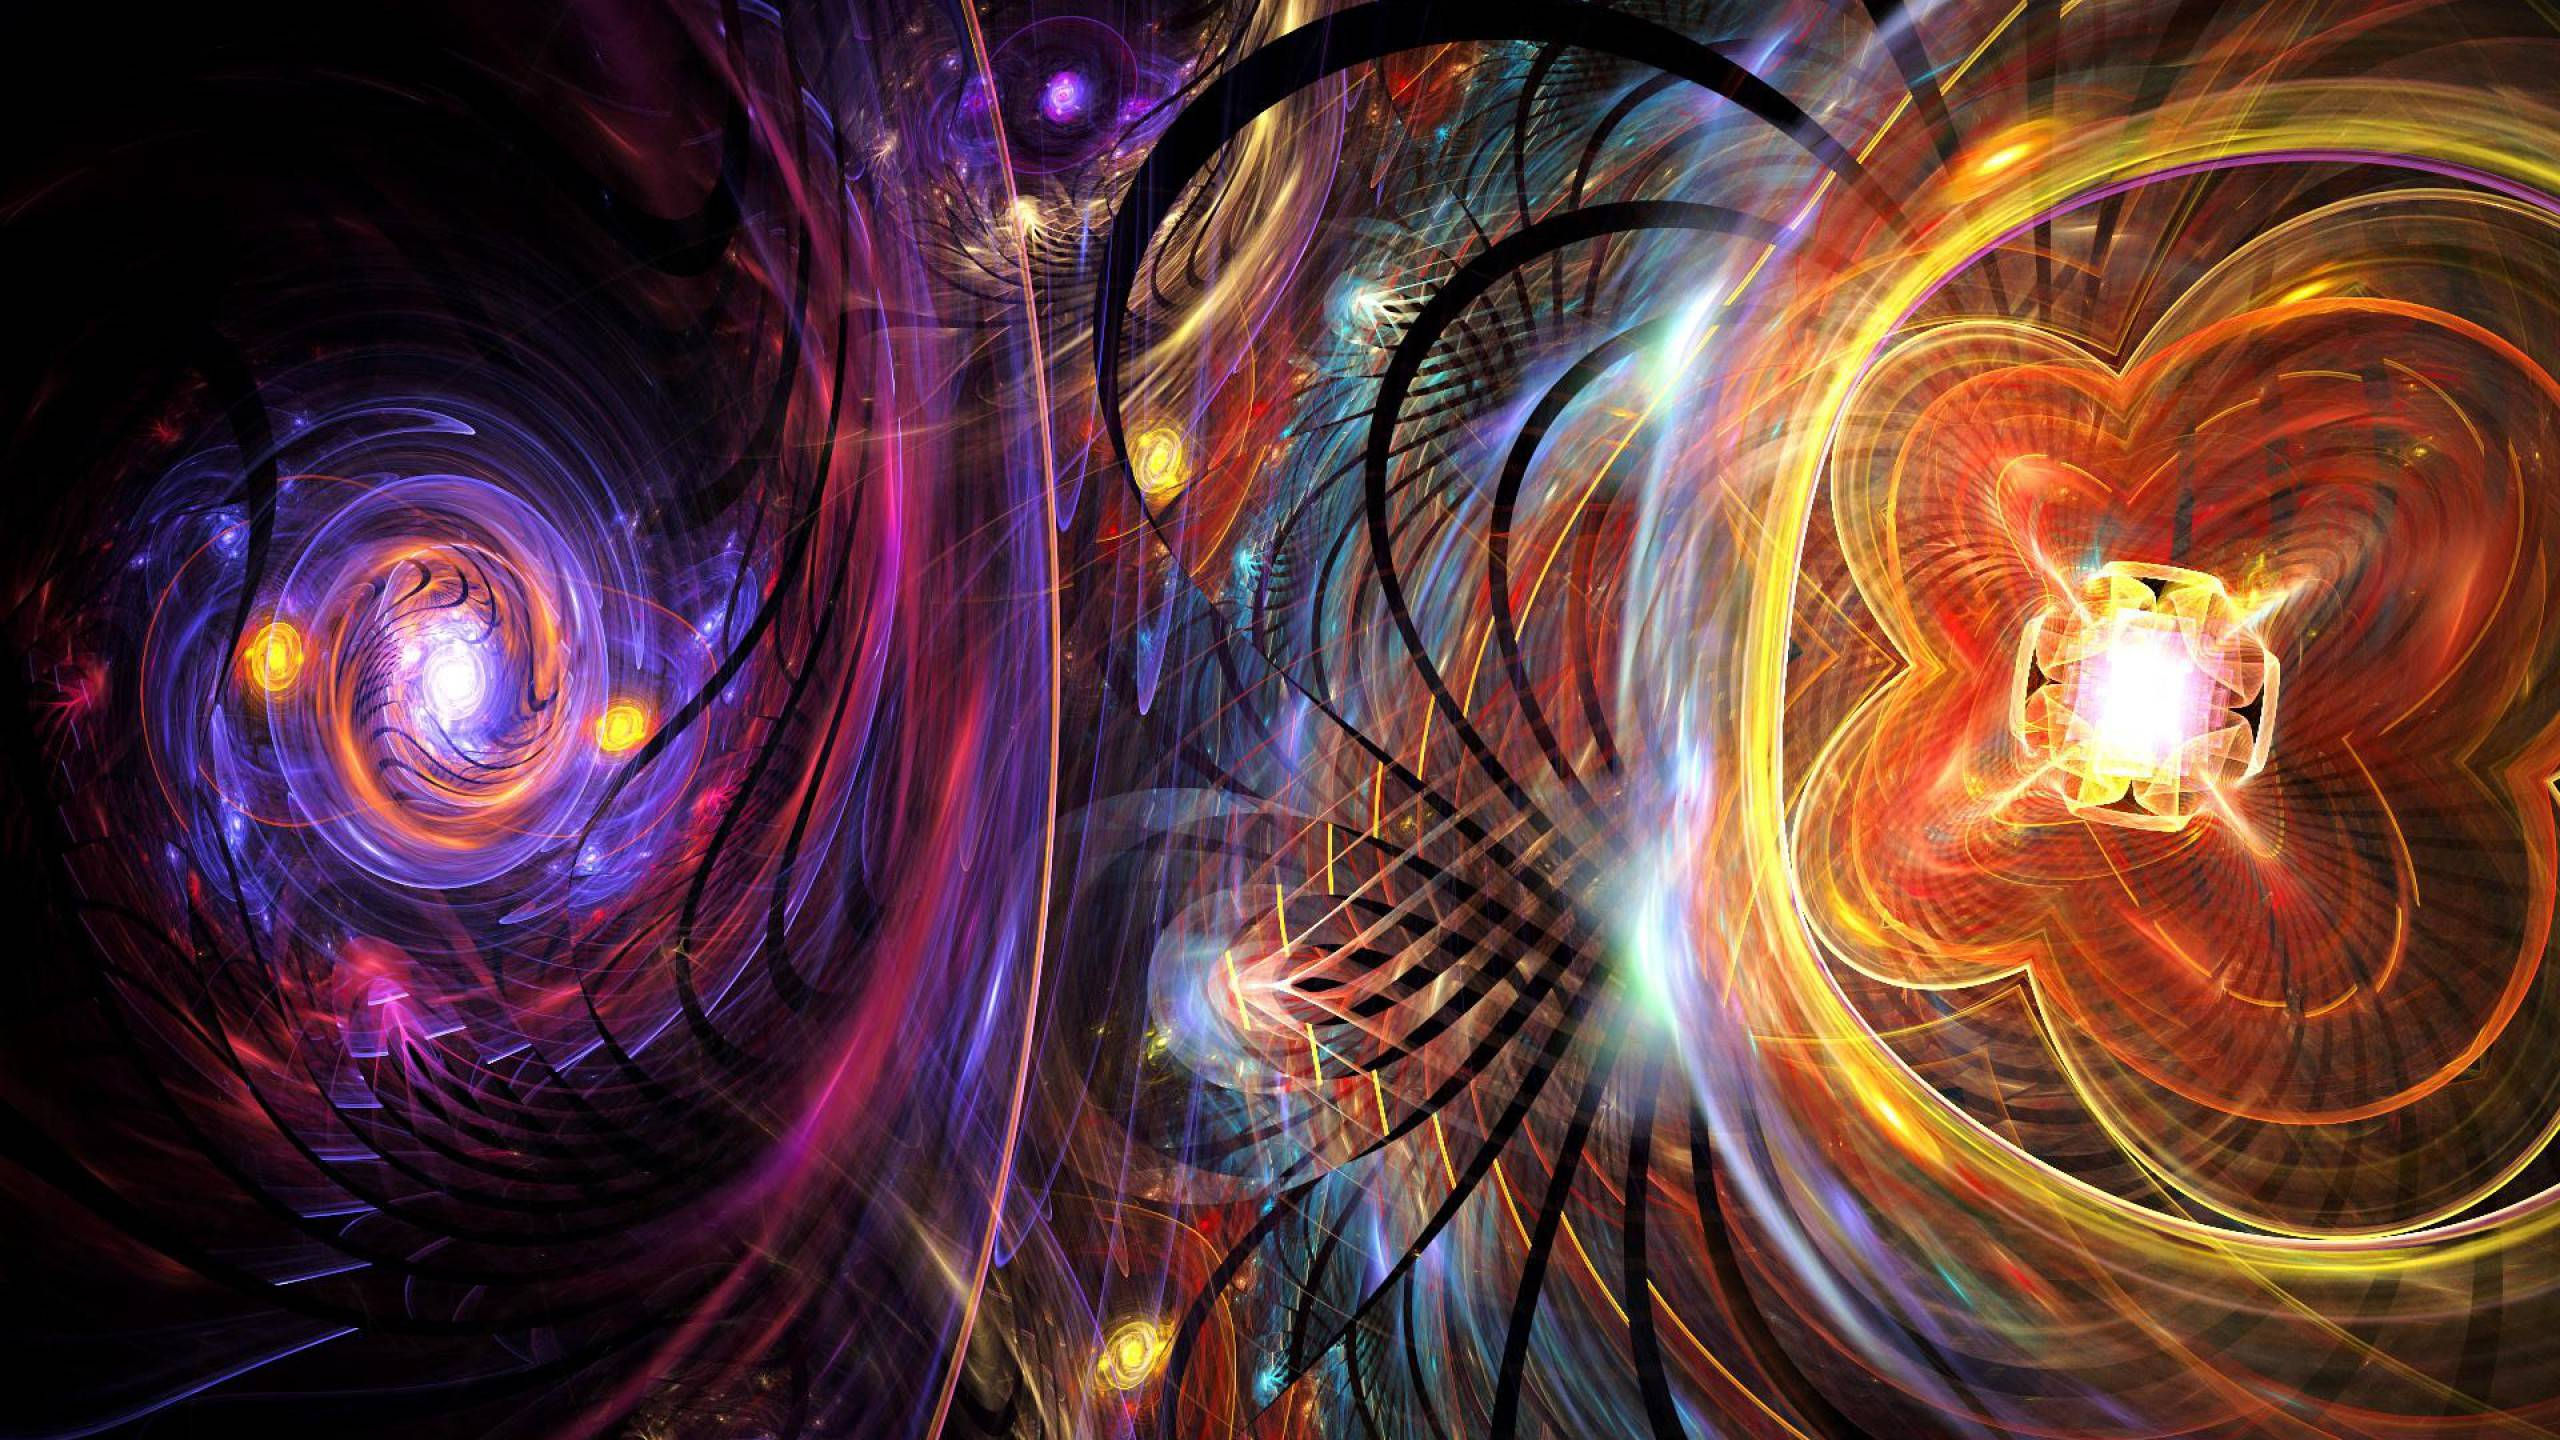 50 best psychedelic and trippy wallpapers in hd techonloop - Psychedelic wallpaper hd ...